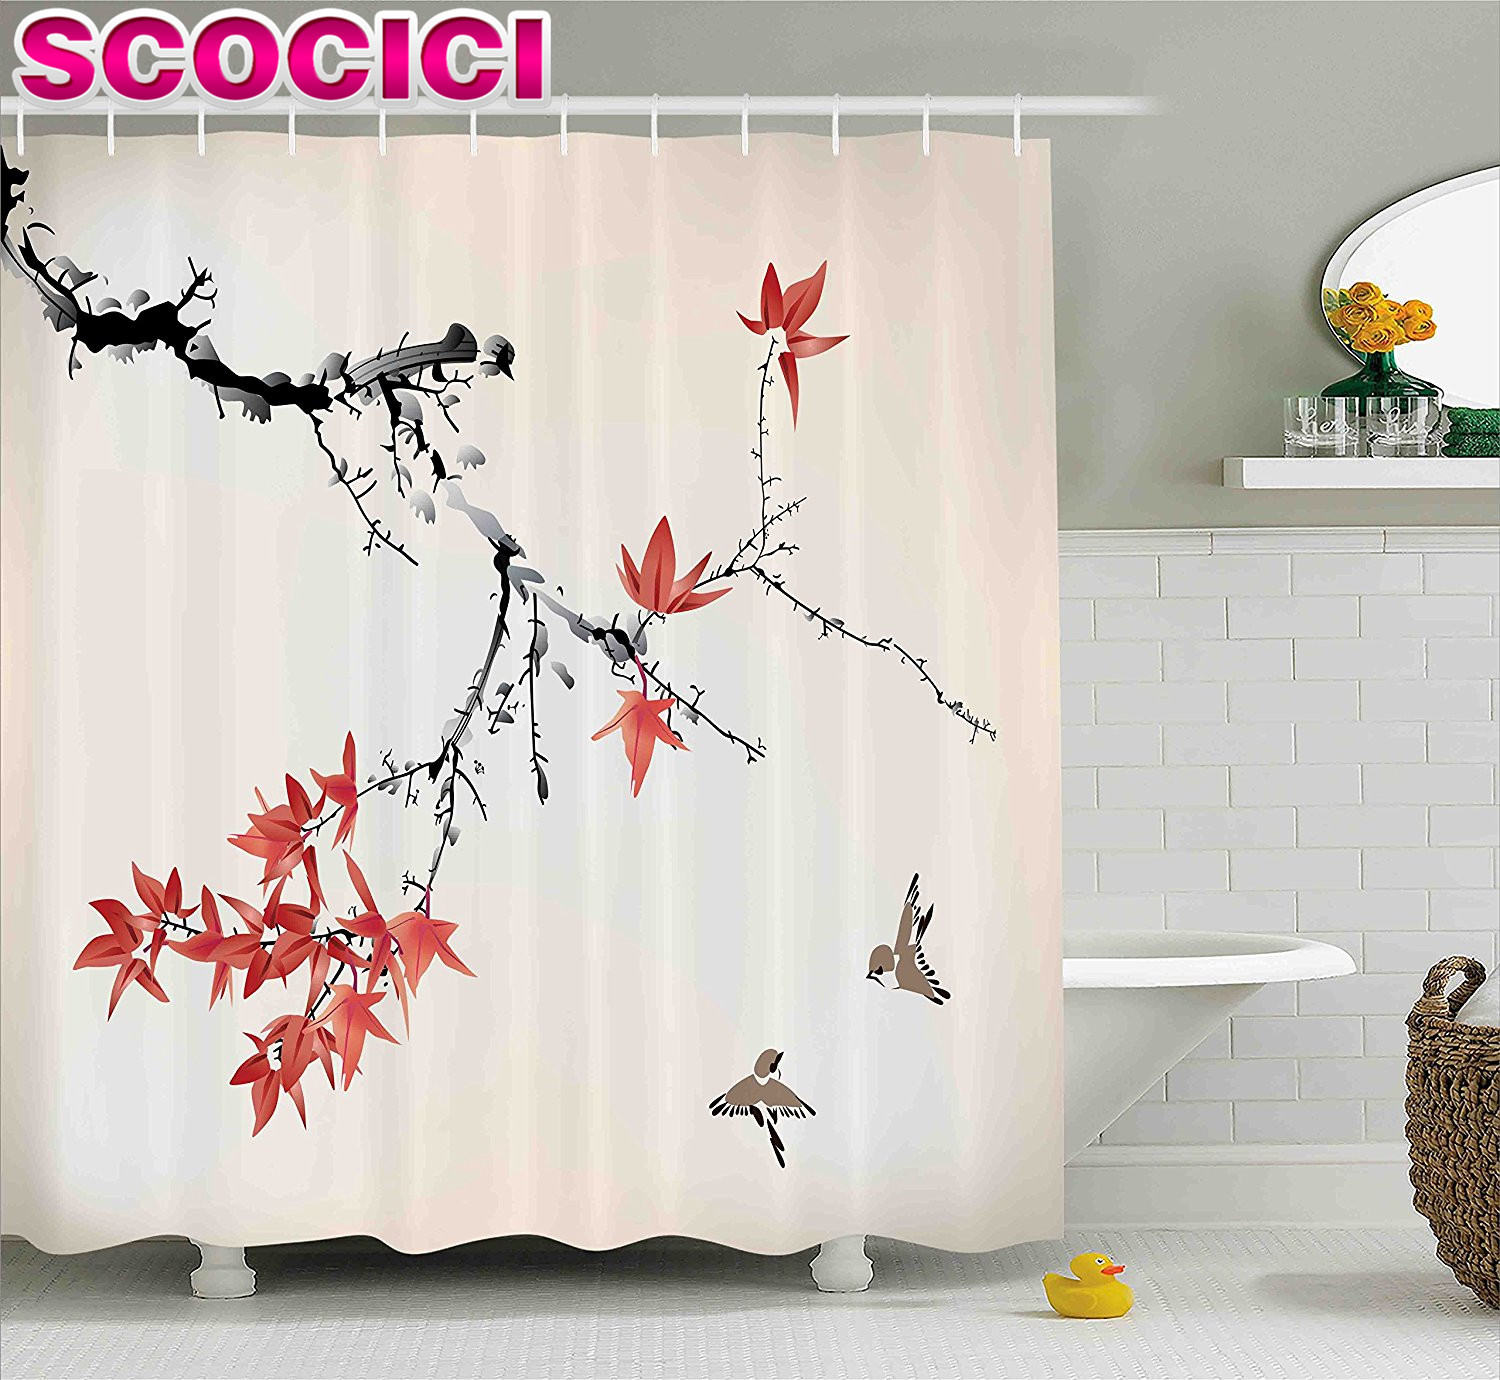 Aliexpress.com : Buy Japanese Shower Curtain Cherry Blossom Sakura Tree  Branches Romantic Spring Themed Watercolor Picture Fabric Bathroom Decor  Set From ...